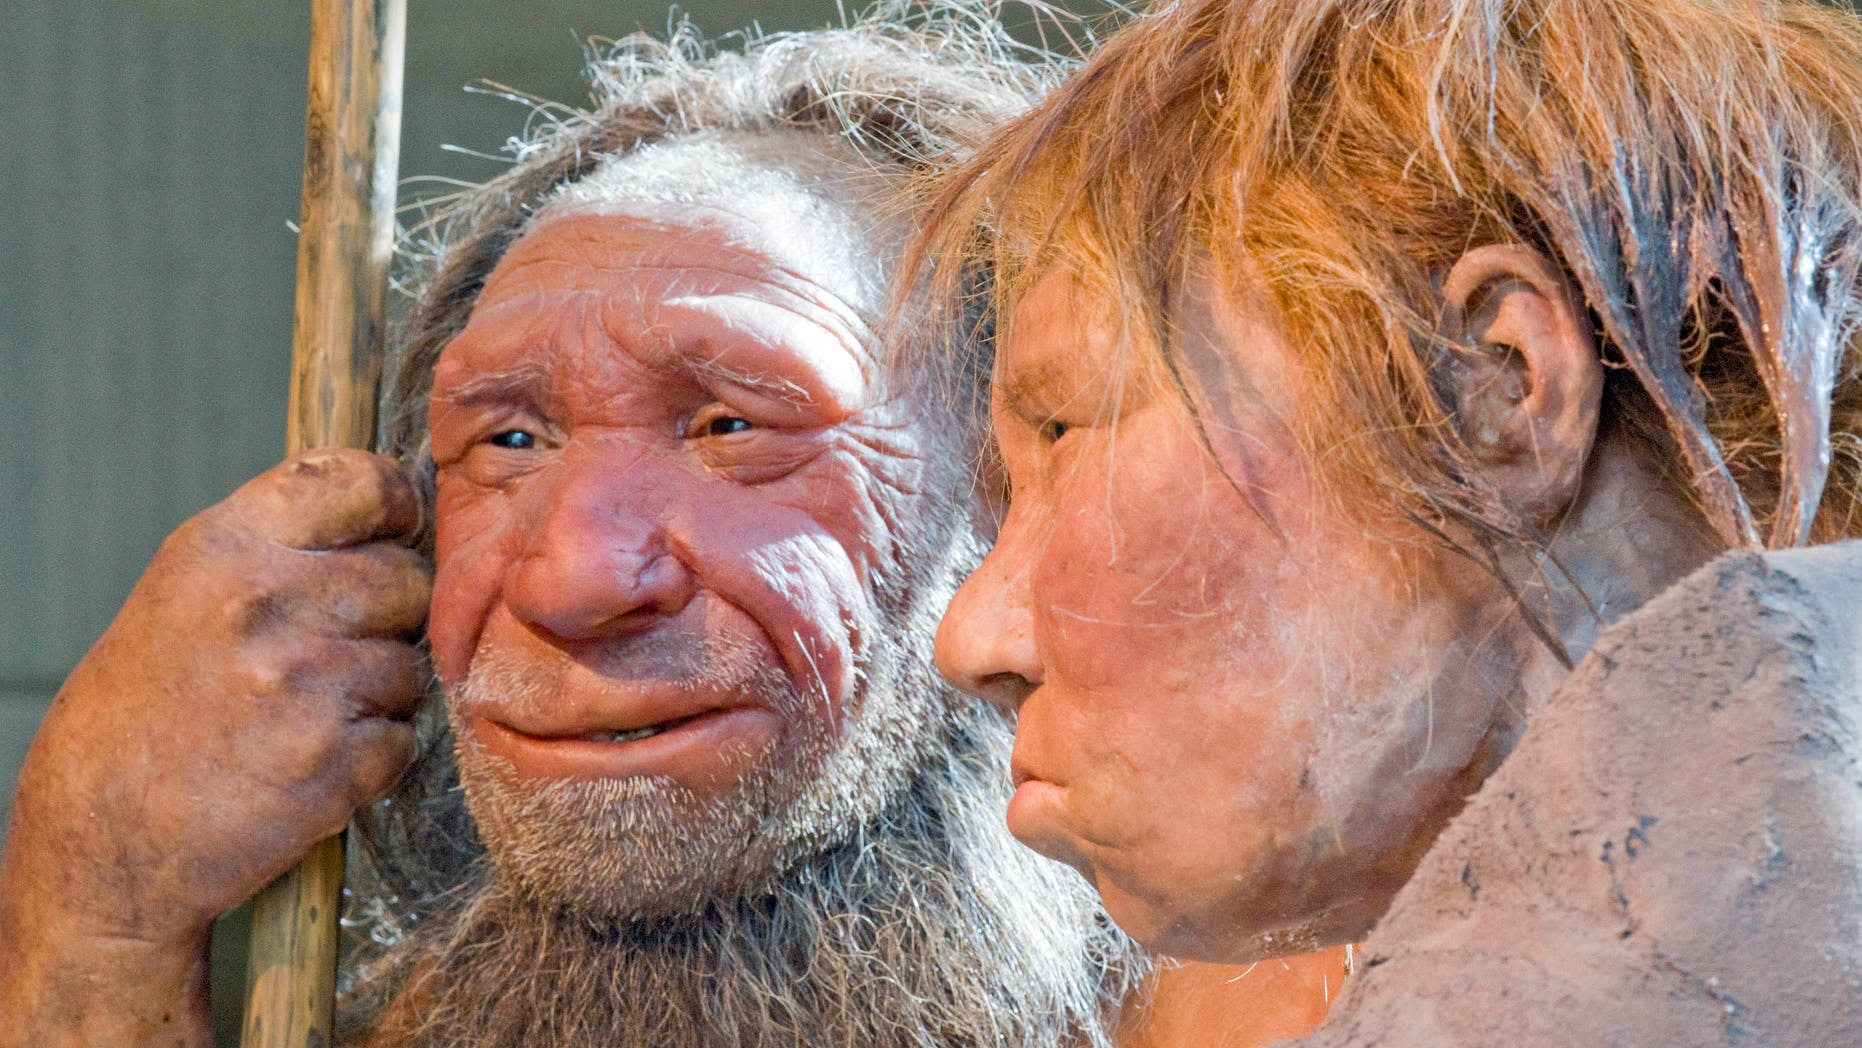 FILE - This Friday, March 20, 2009 file photo shows reconstructions of a Neanderthal man, left, and woman at the Neanderthal museum in Mettmann, Germany. A new study released by the journal Science on Thursday, Feb. 1, 2016 says a person's risk of becoming depressed or hooked on smoking may be influenced by DNA inherited from Neanderthals. (AP Photo/Martin Meissner)